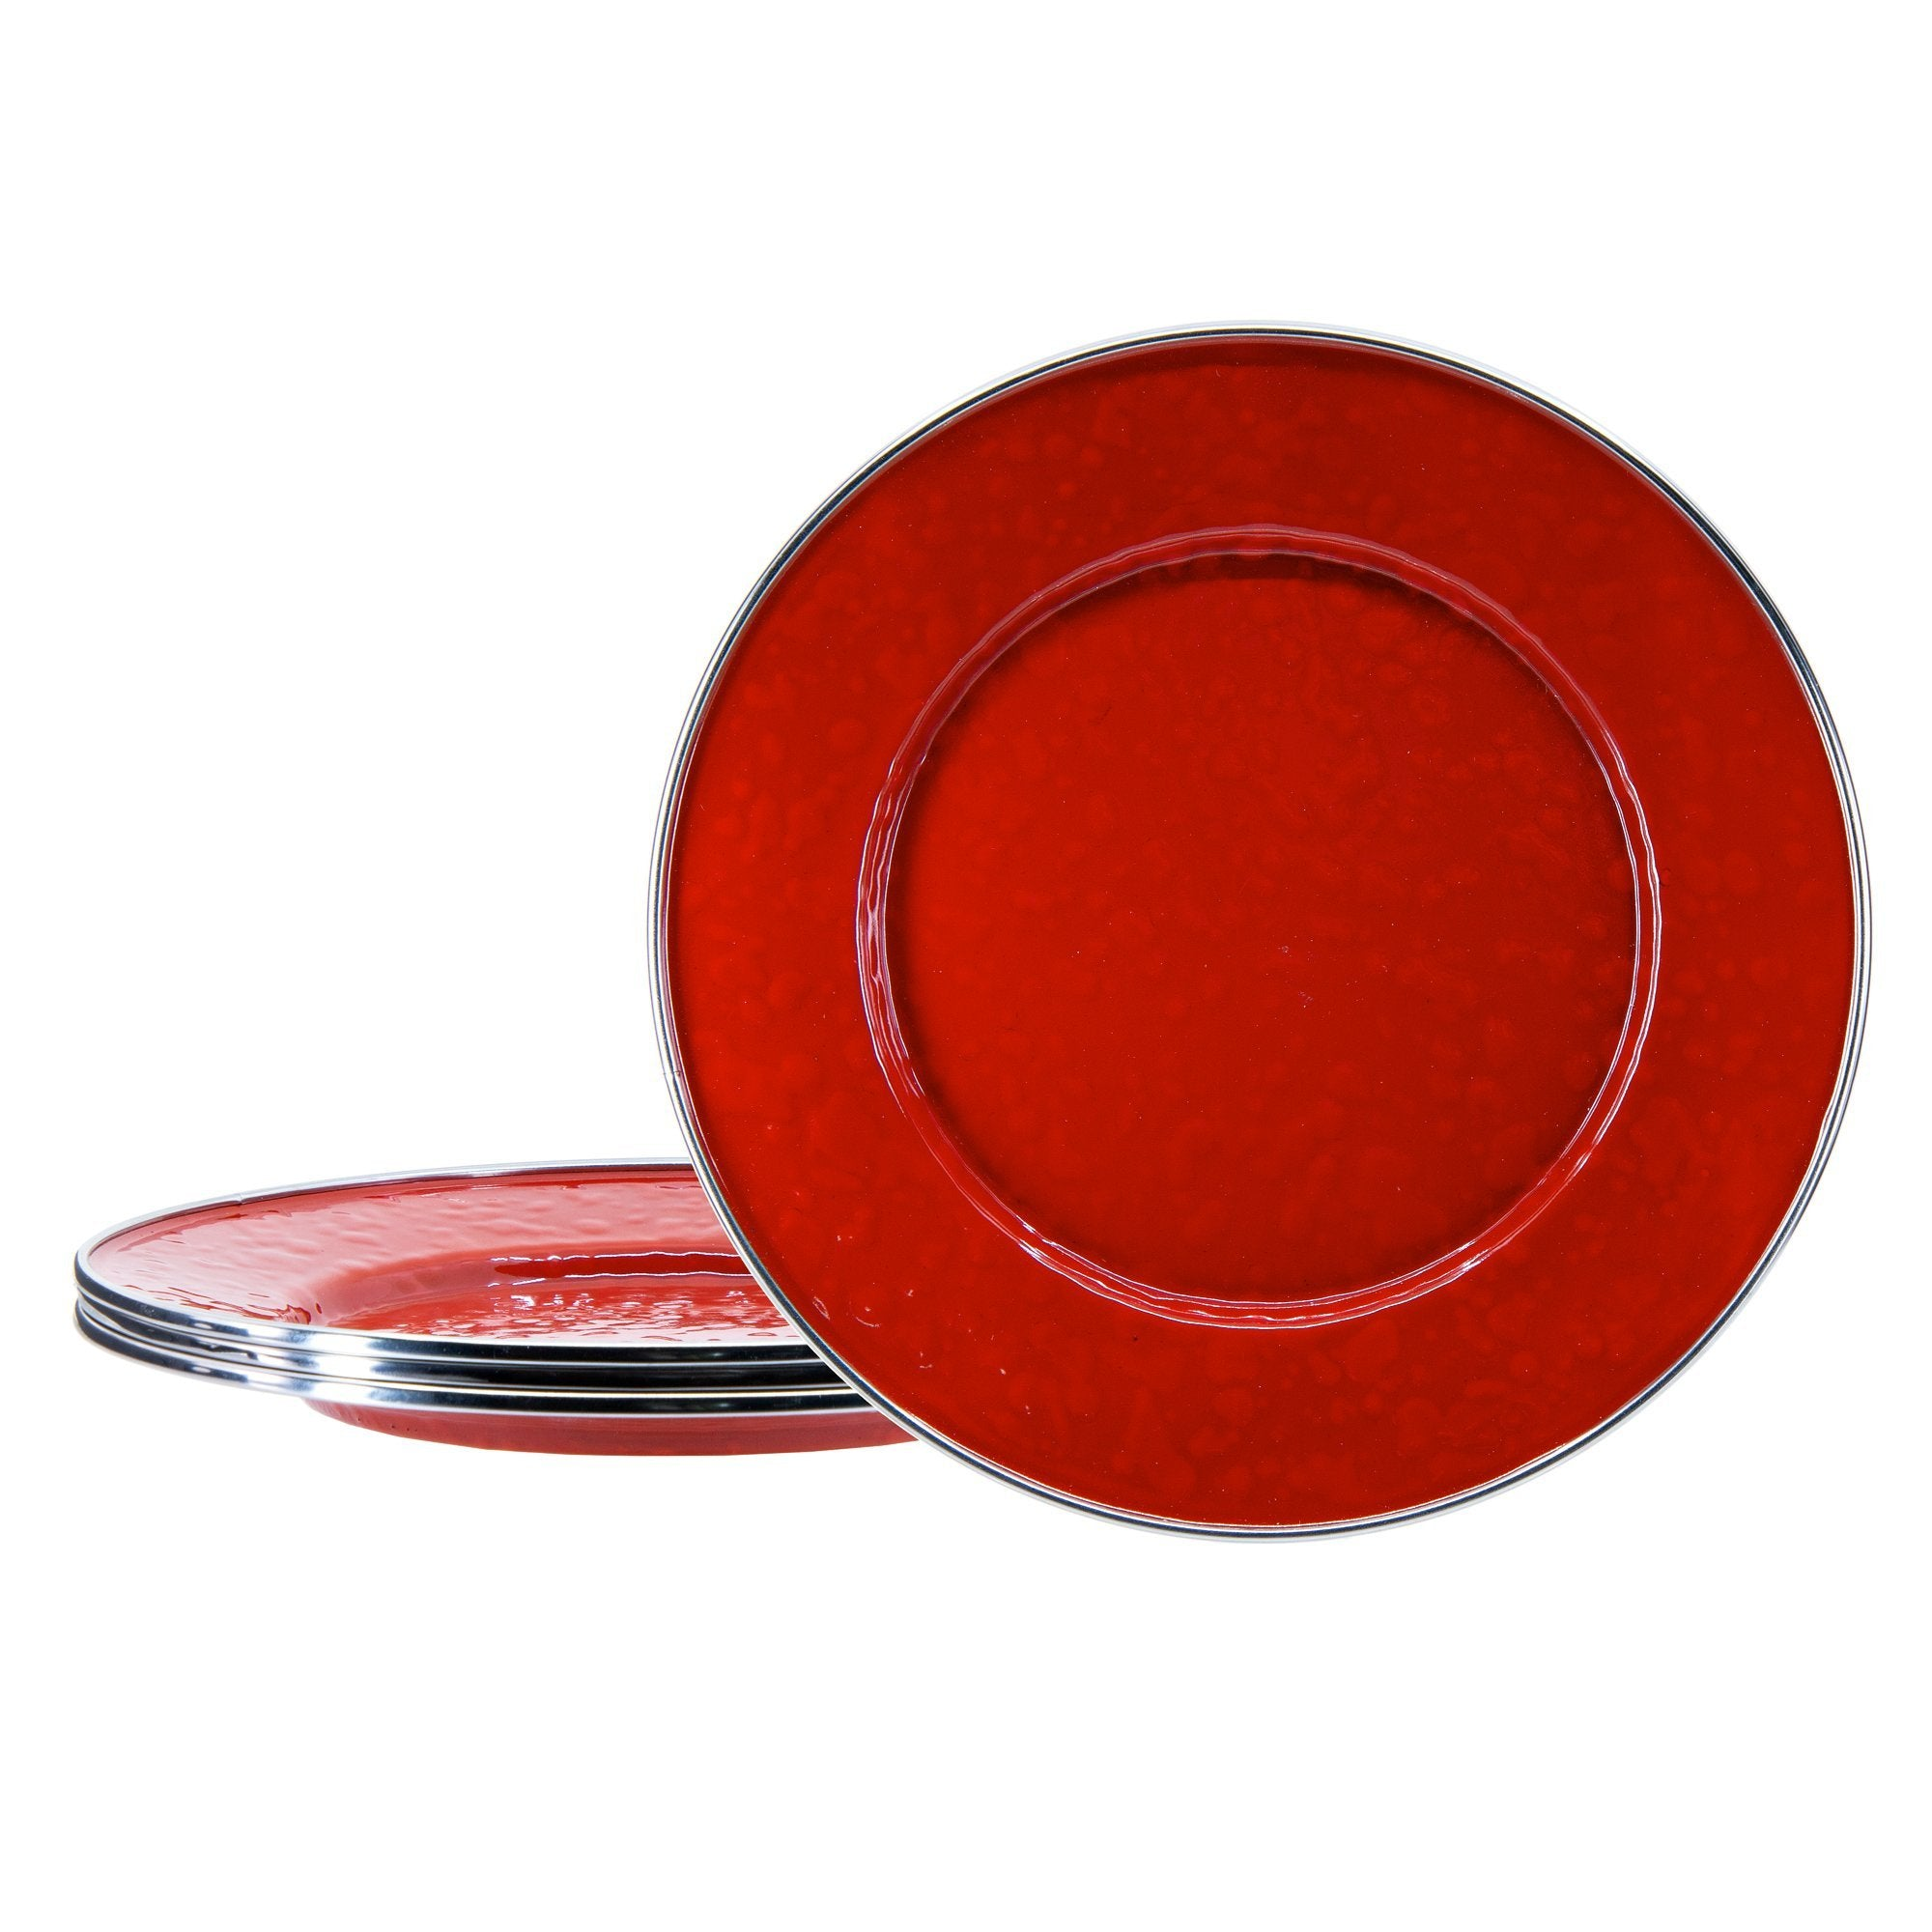 RR11S4 - Set of 4 - Solid Red - Sandwich Plates